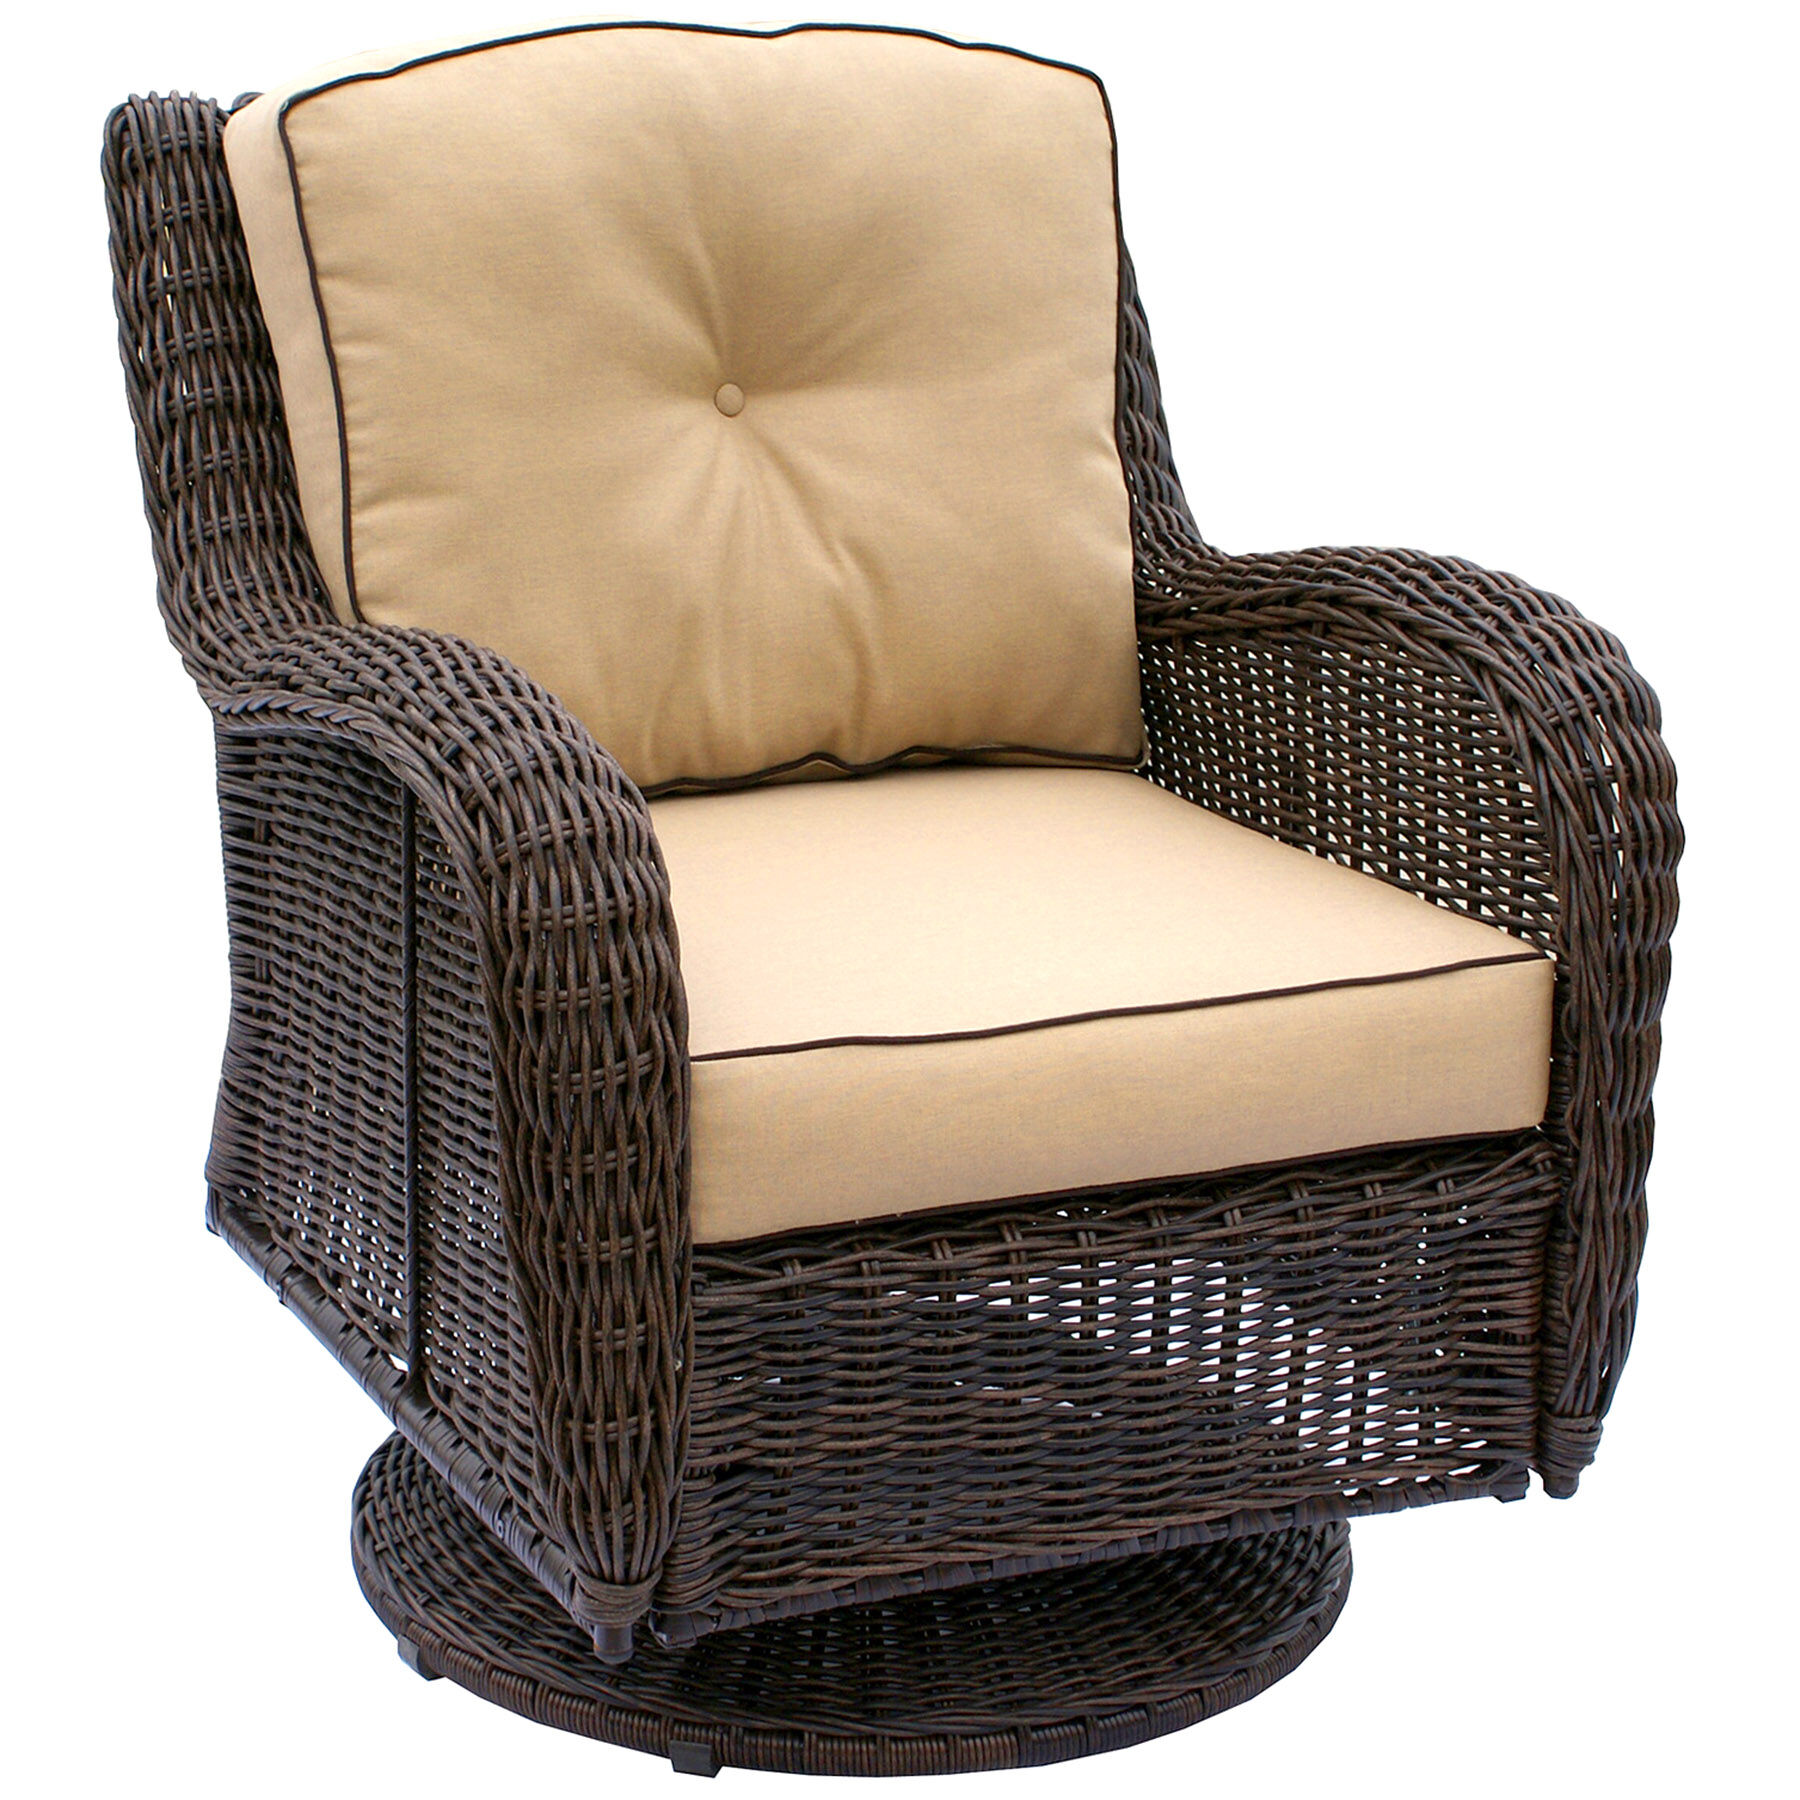 Wicker Swivel Chair Brown Grand Isle Wicker Swivel Chair At Home